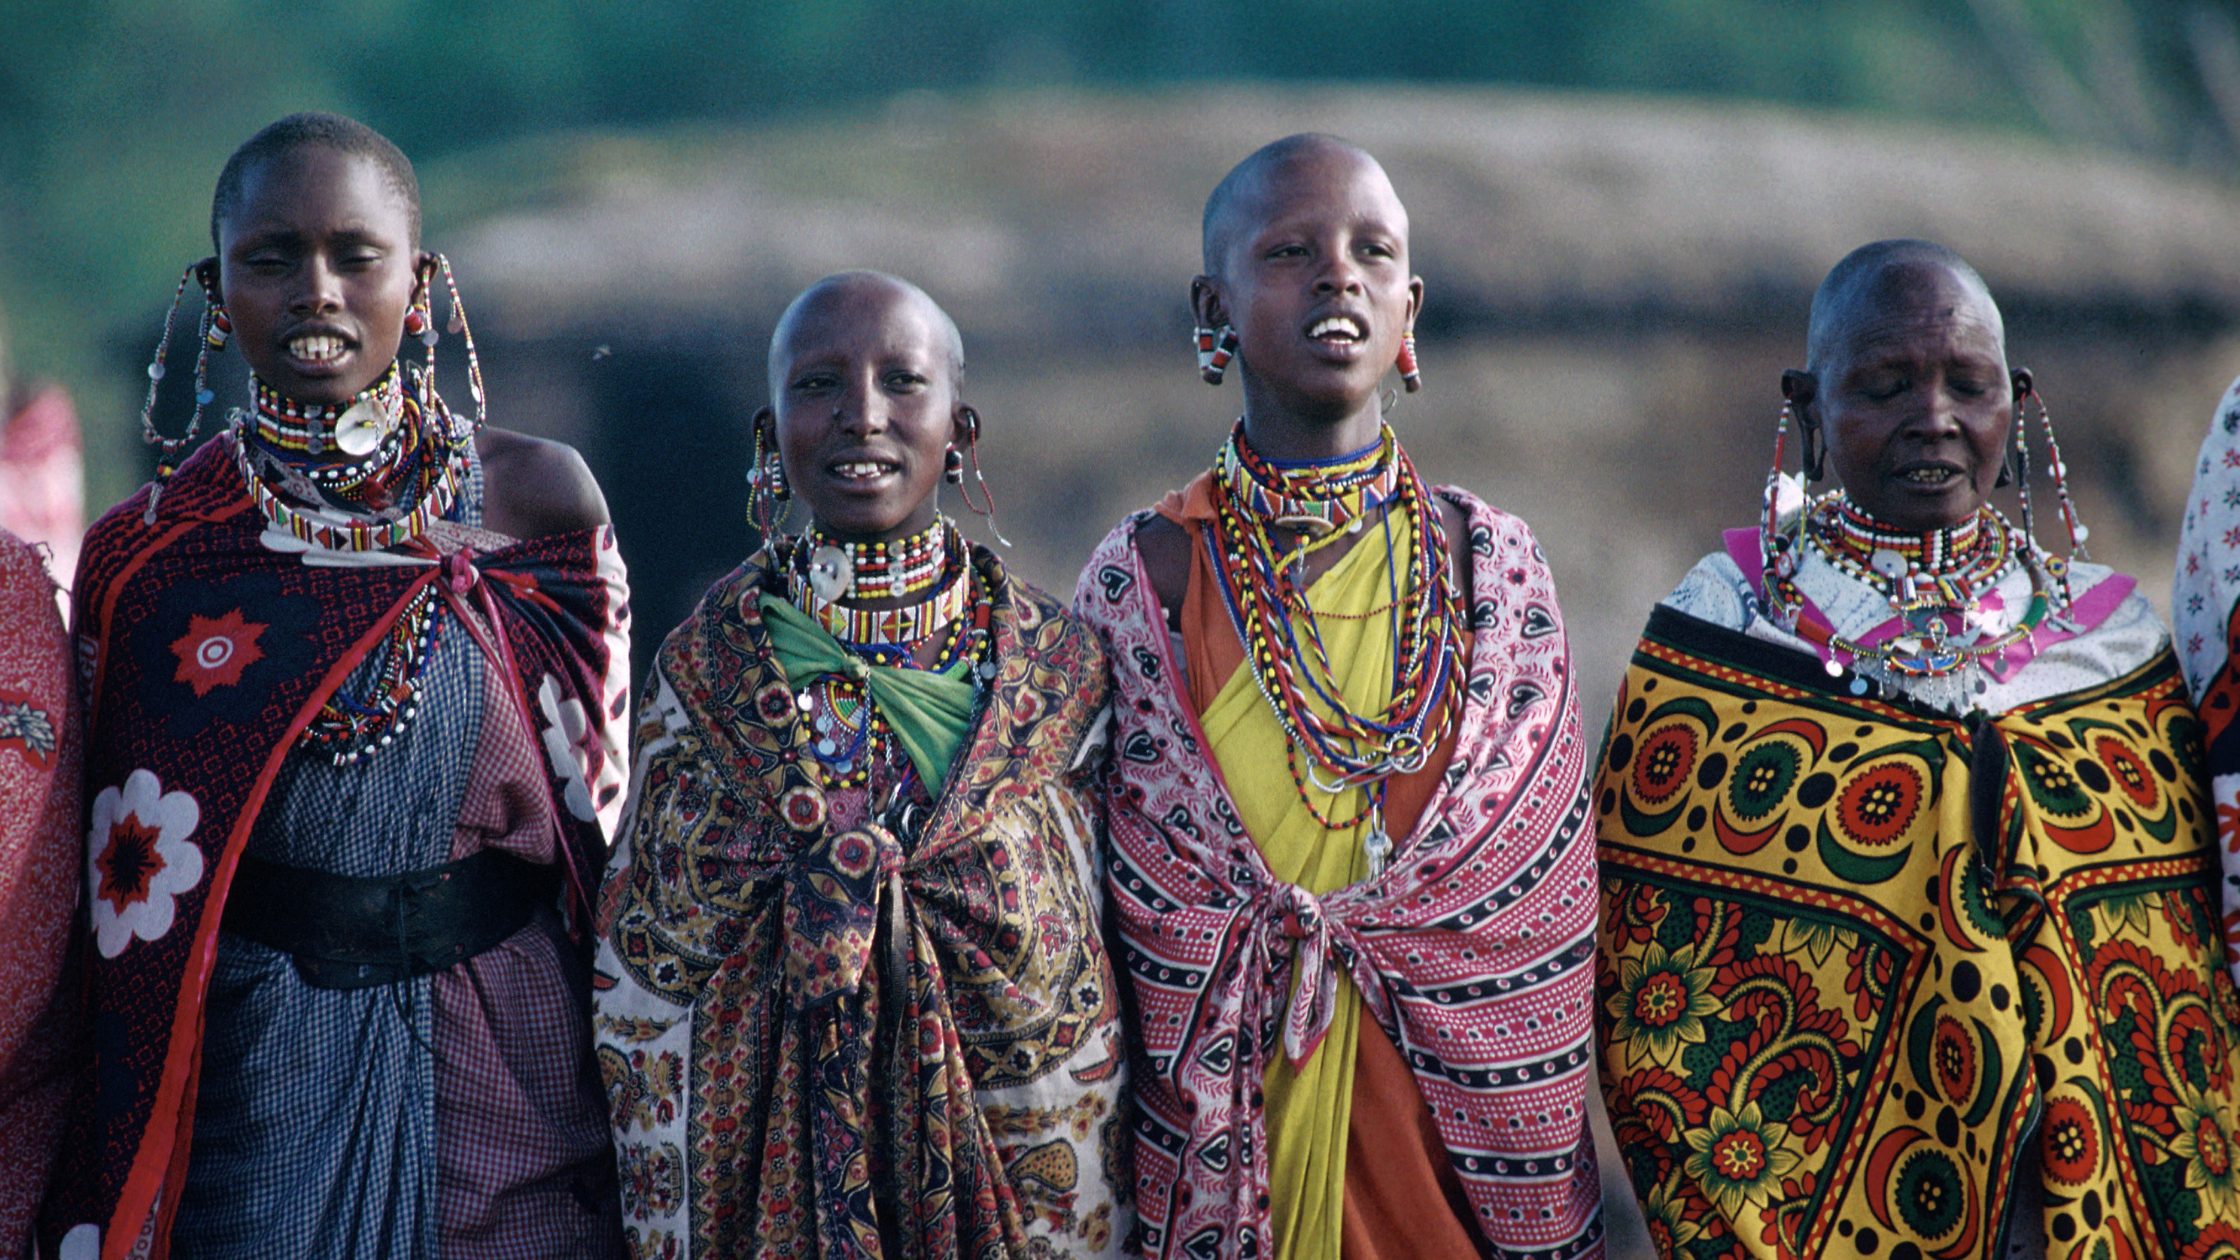 Kenyan people in traditional attire